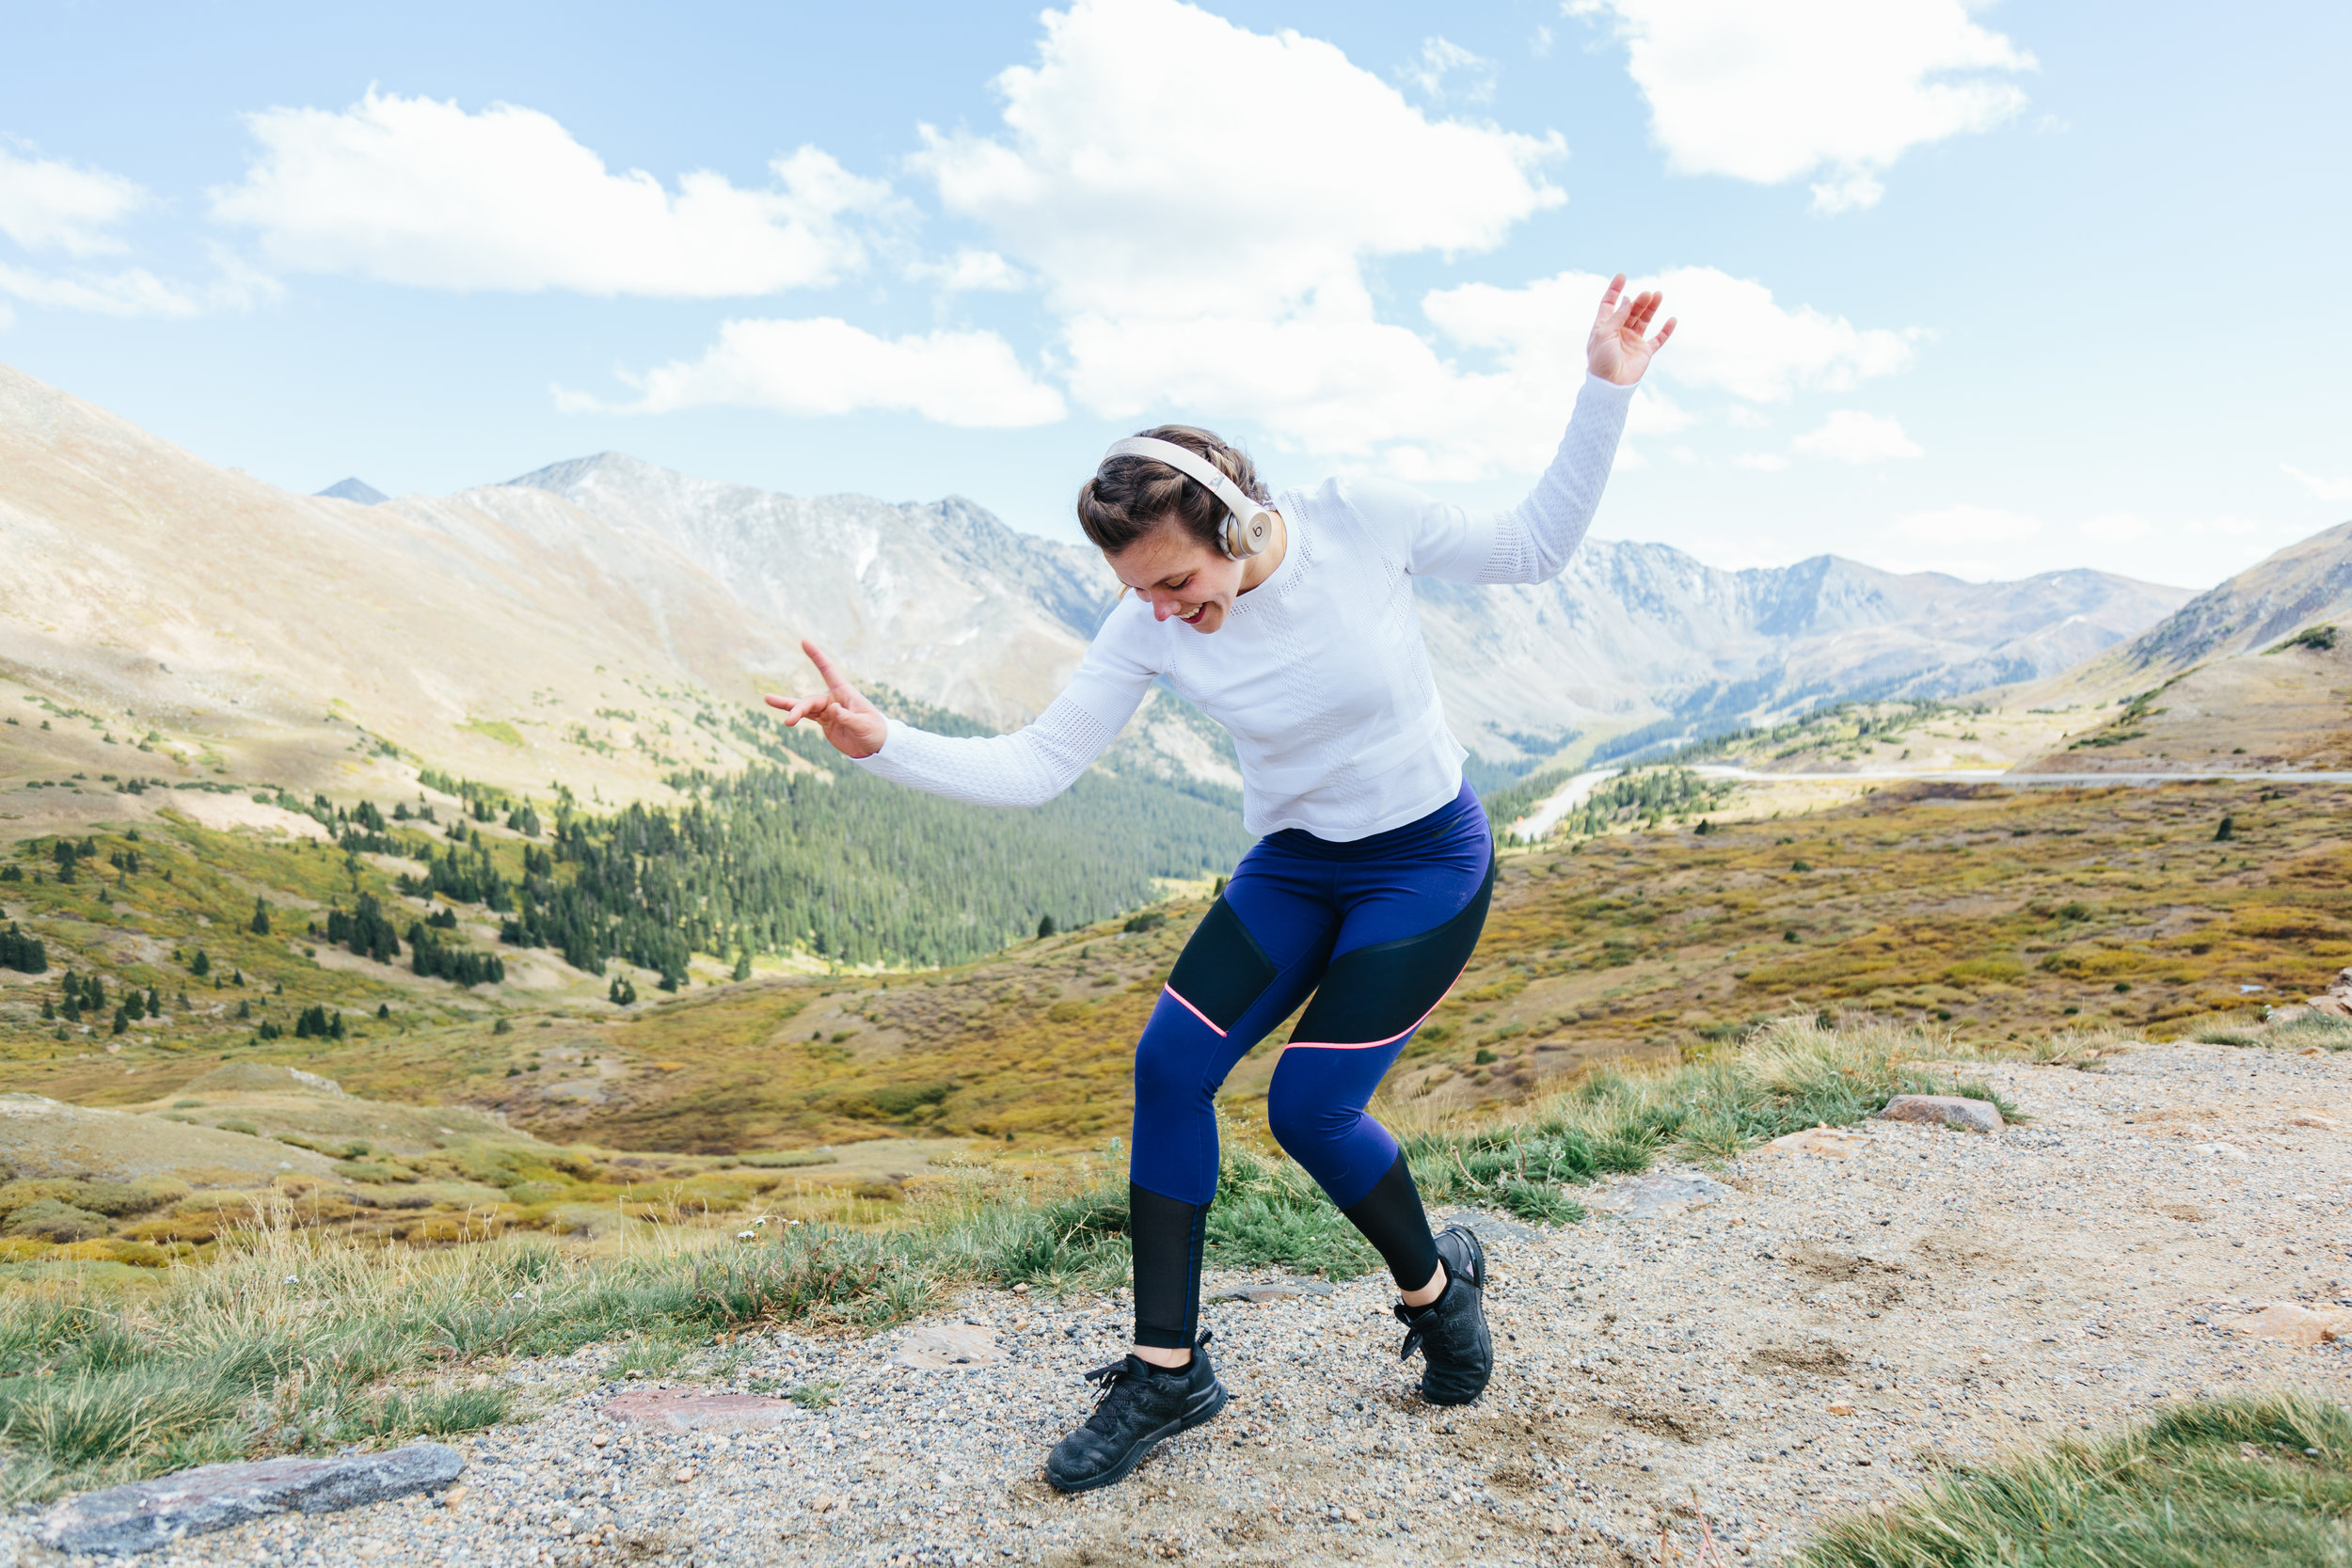 RL Shoot - Loveland Pass dancing .JPG